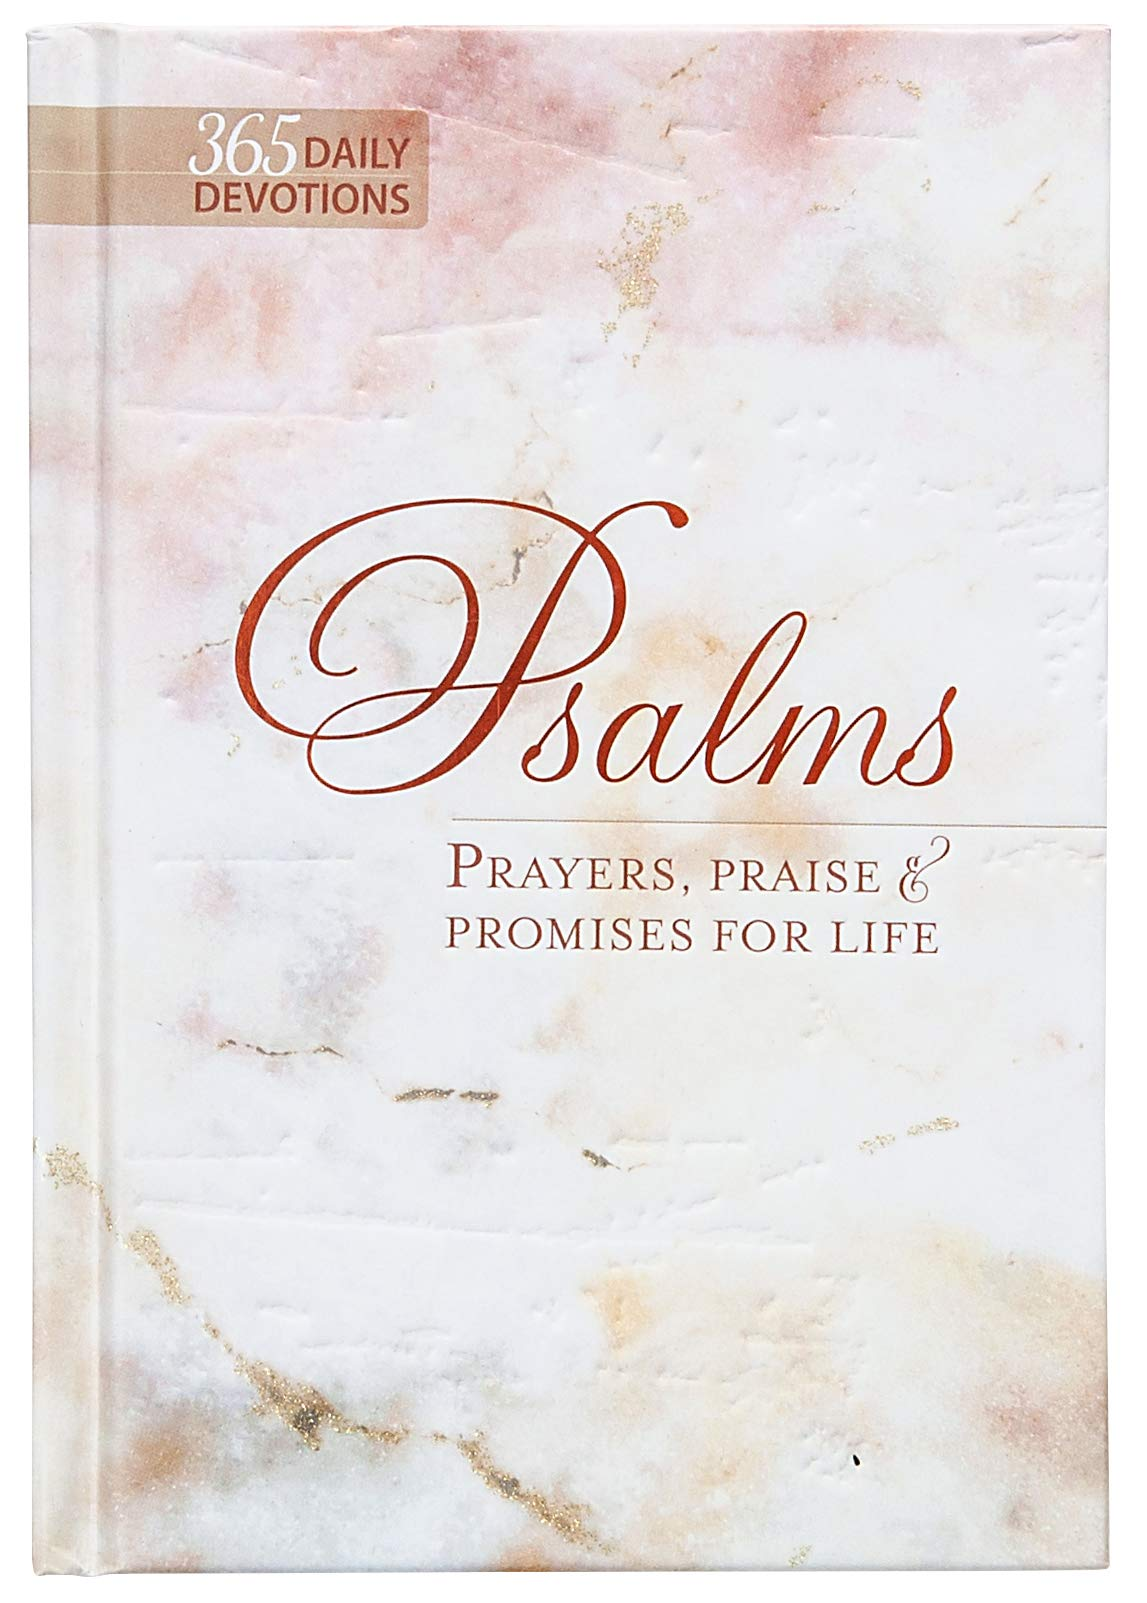 ROCKONLINE | New Creation Church | NCC | Joseph Prince | ROCK Bookshop | ROCK Bookstore | Star Vista | Christian Living | Psalms Prayers, Praise & Promises: 365 Daily Devotions | Devotional | Free delivery for Singapore Orders above $50.